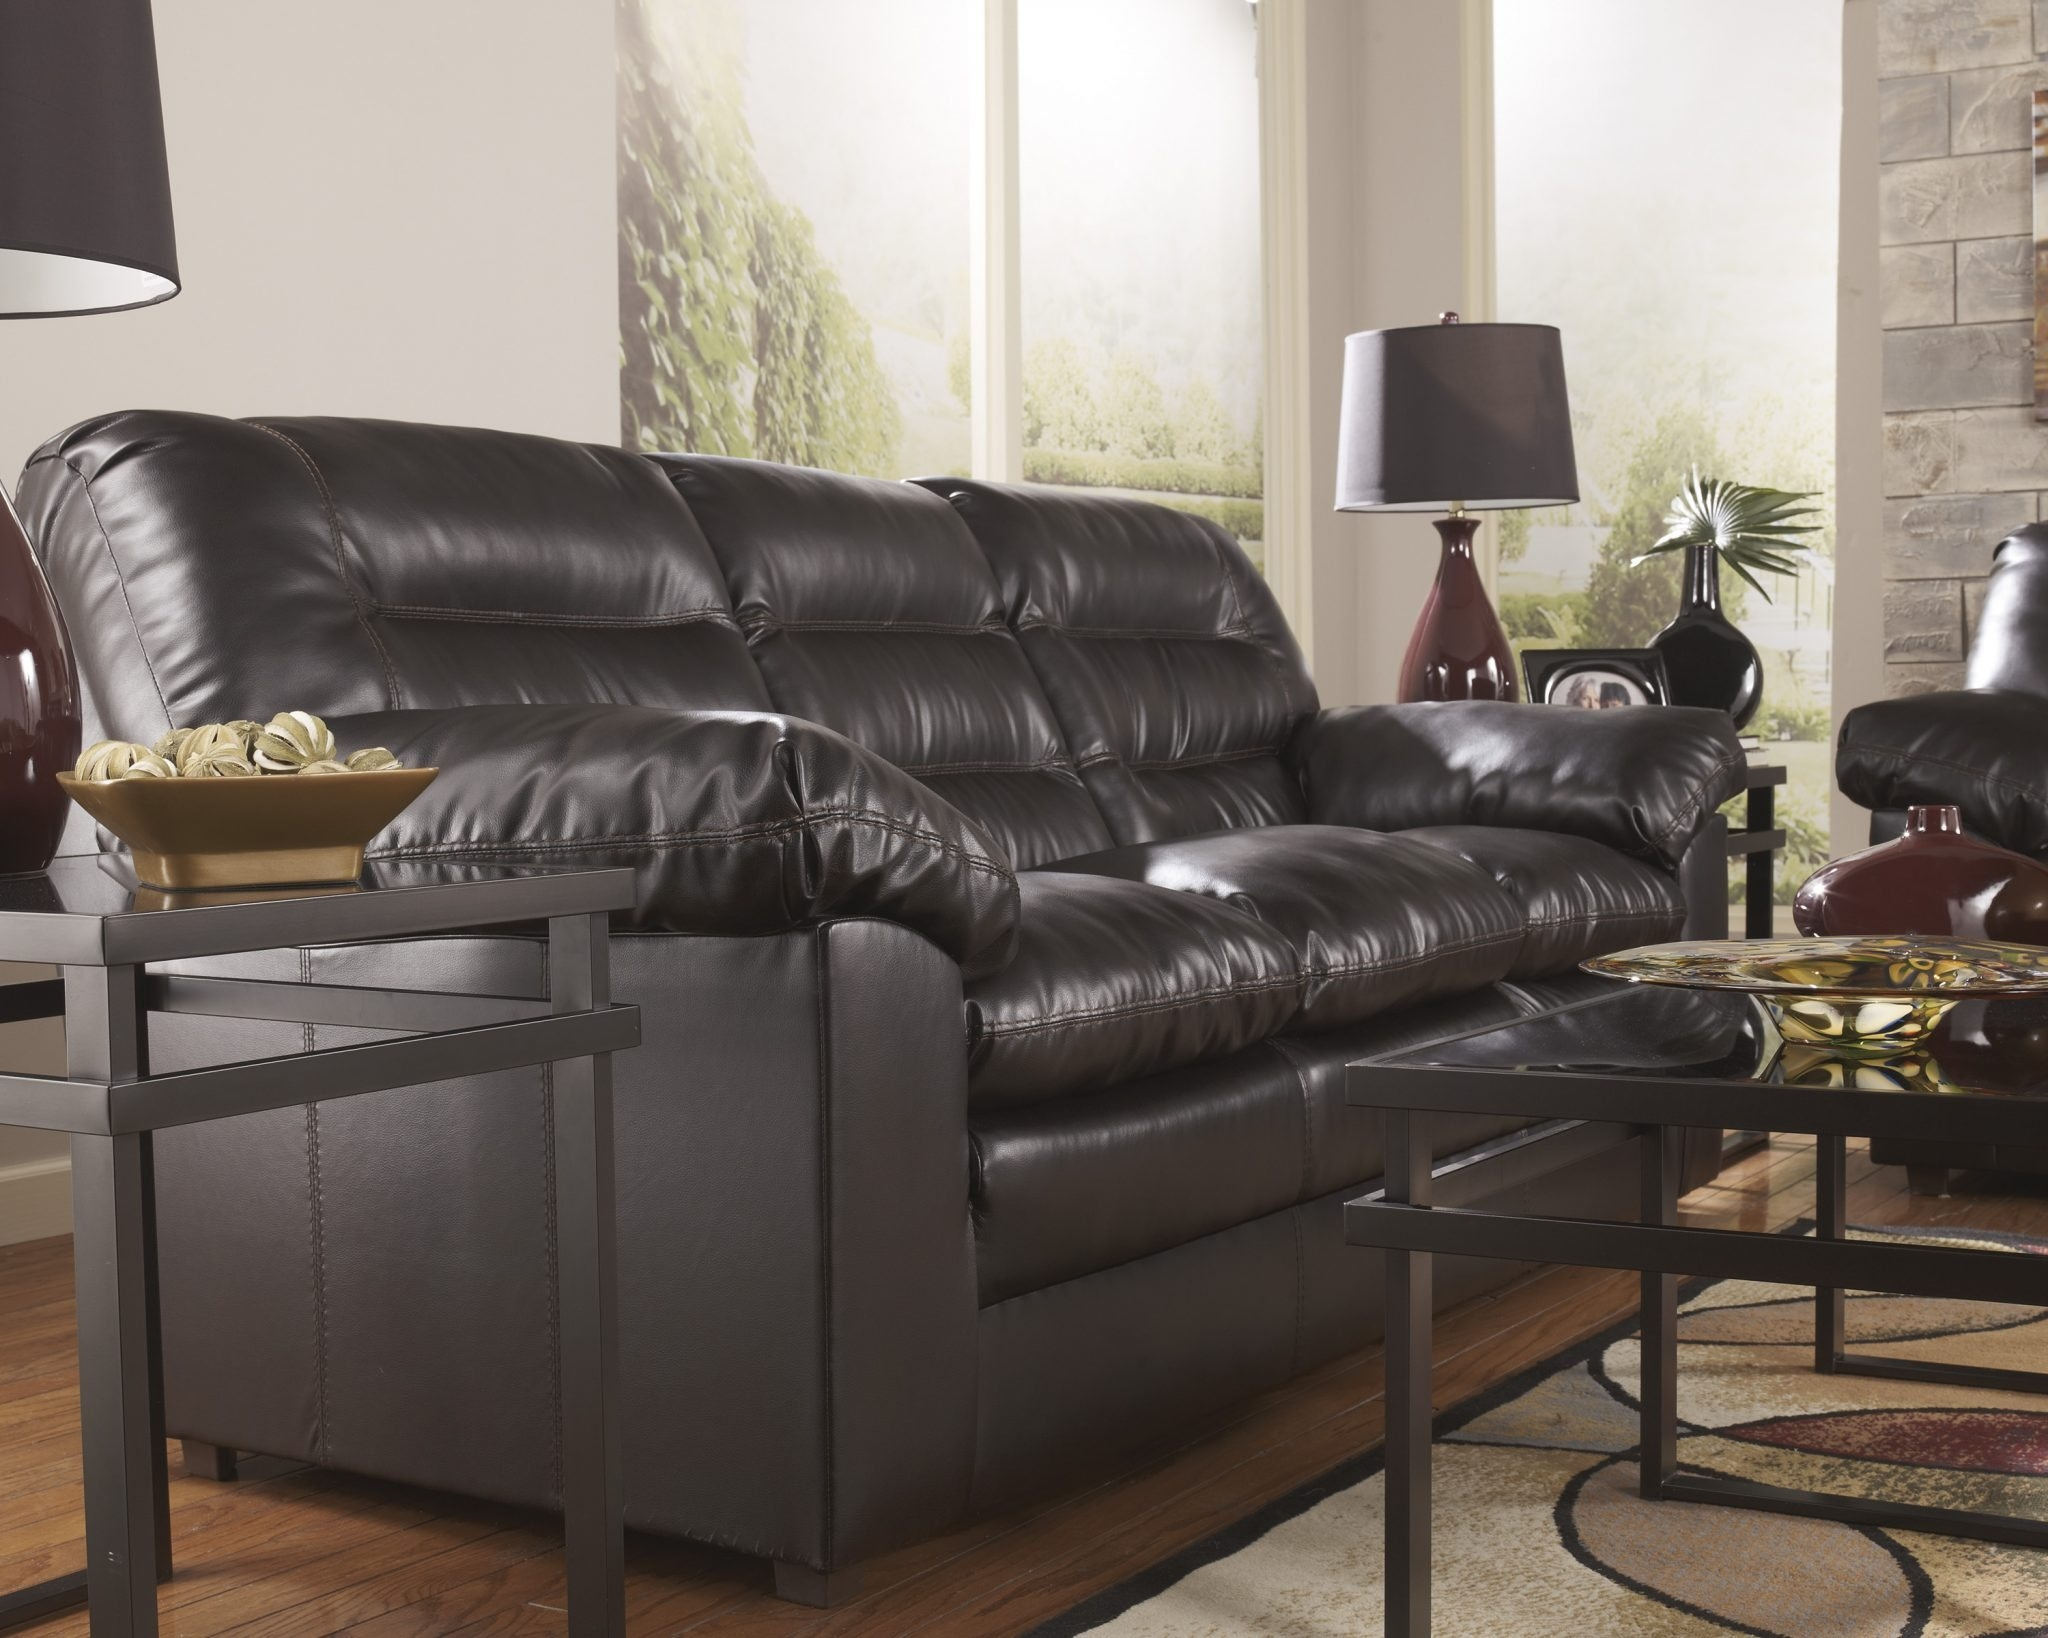 Best Furniture Mentor Oh Furniture Store Ashley Furniture Regarding Ashley Furniture Gray Sofa (Image 8 of 15)